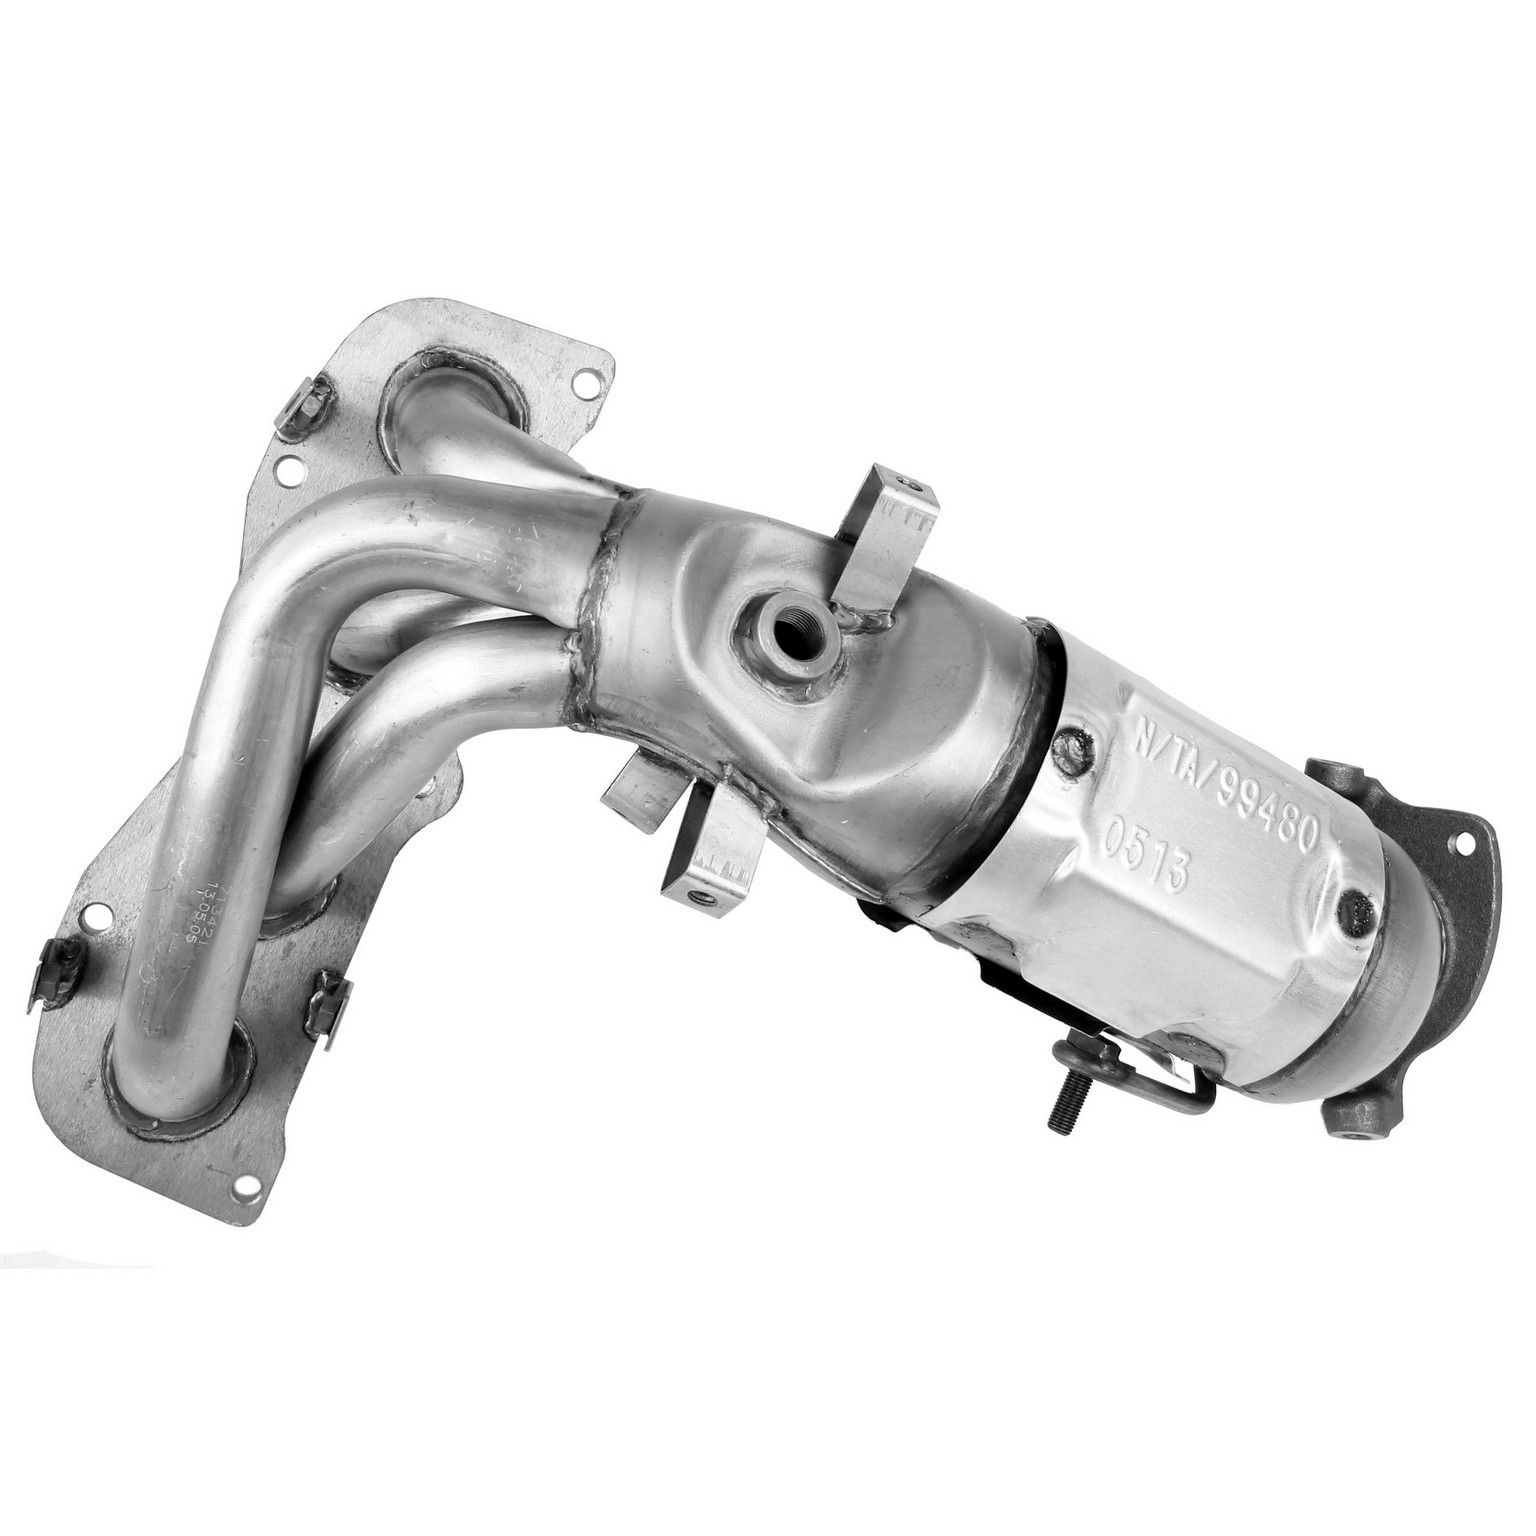 2002 Toyota Camry Exhaust Manifold With Integrated Catalytic Converter Front 4 Cyl 24l Walker 16384 Ultra Low Emission Vehicle Ulev Fits Fed Calif: 2001 Toyota Camry Le Catalytic Converter At Woreks.co